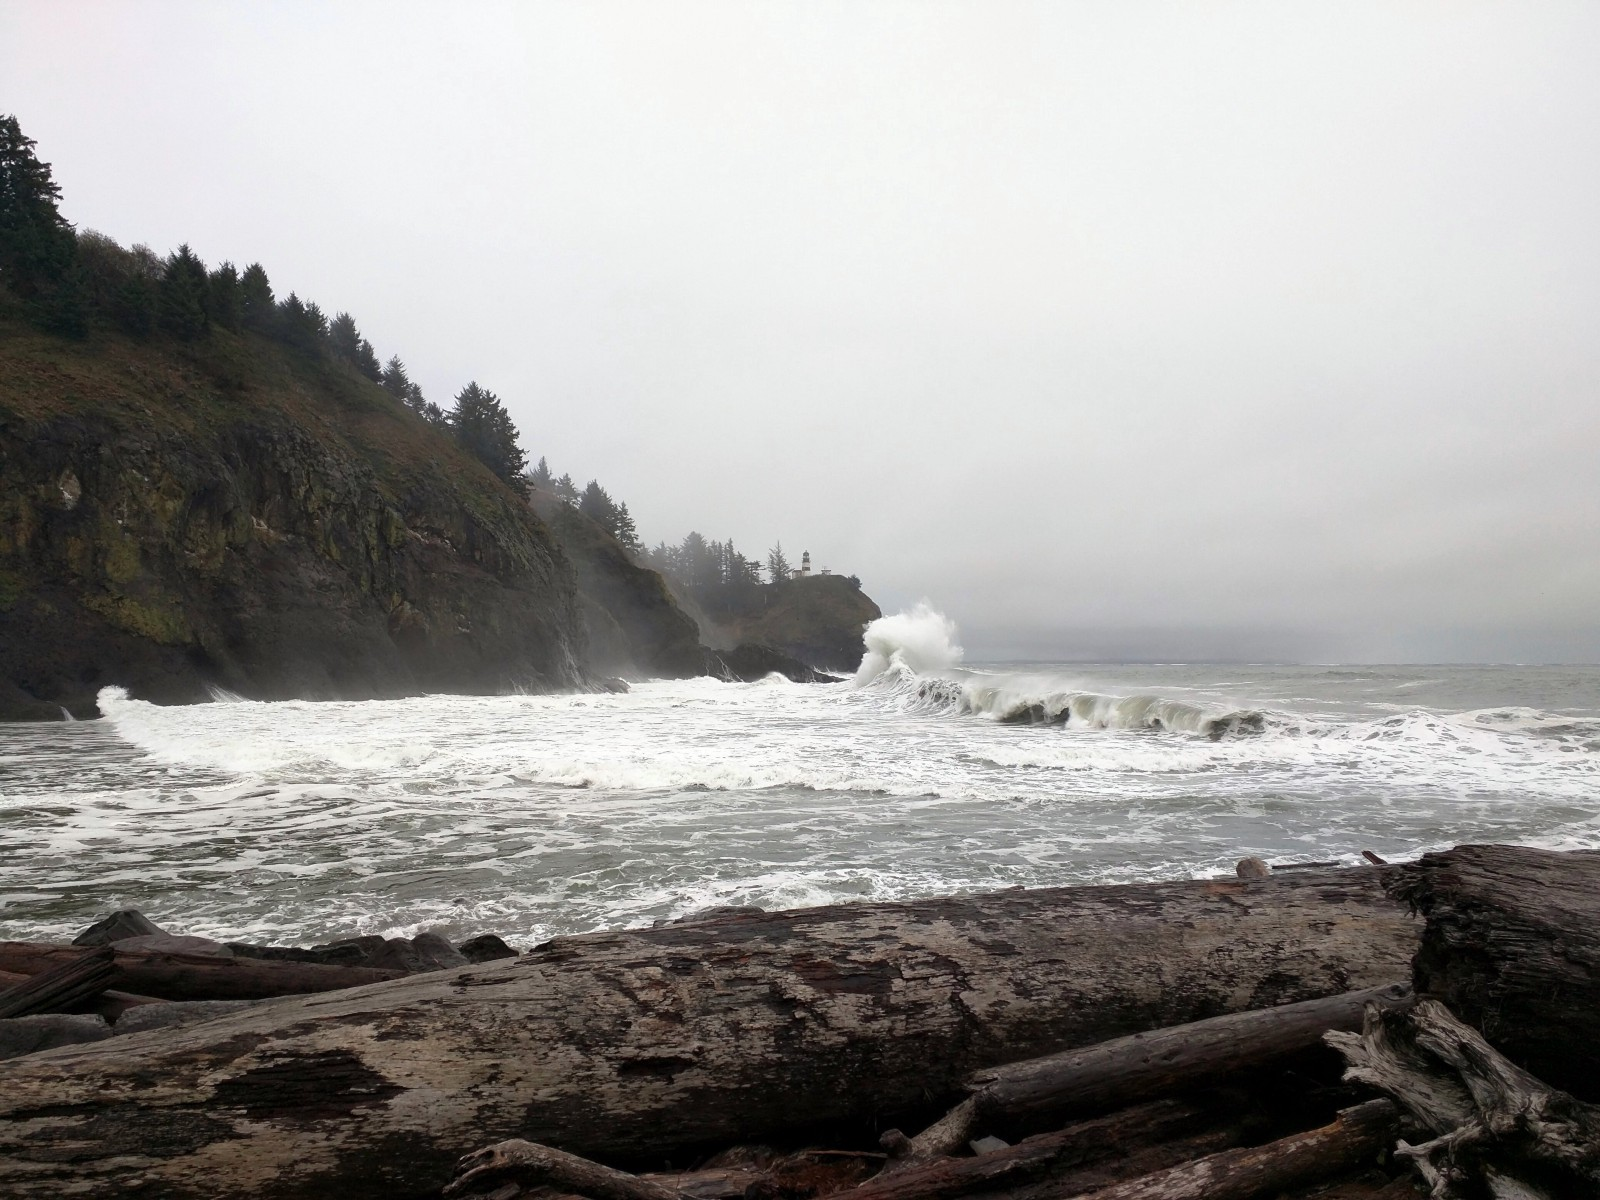 Crashing waves from Waikiki Beach down to Cape Disappointment Lighthouse